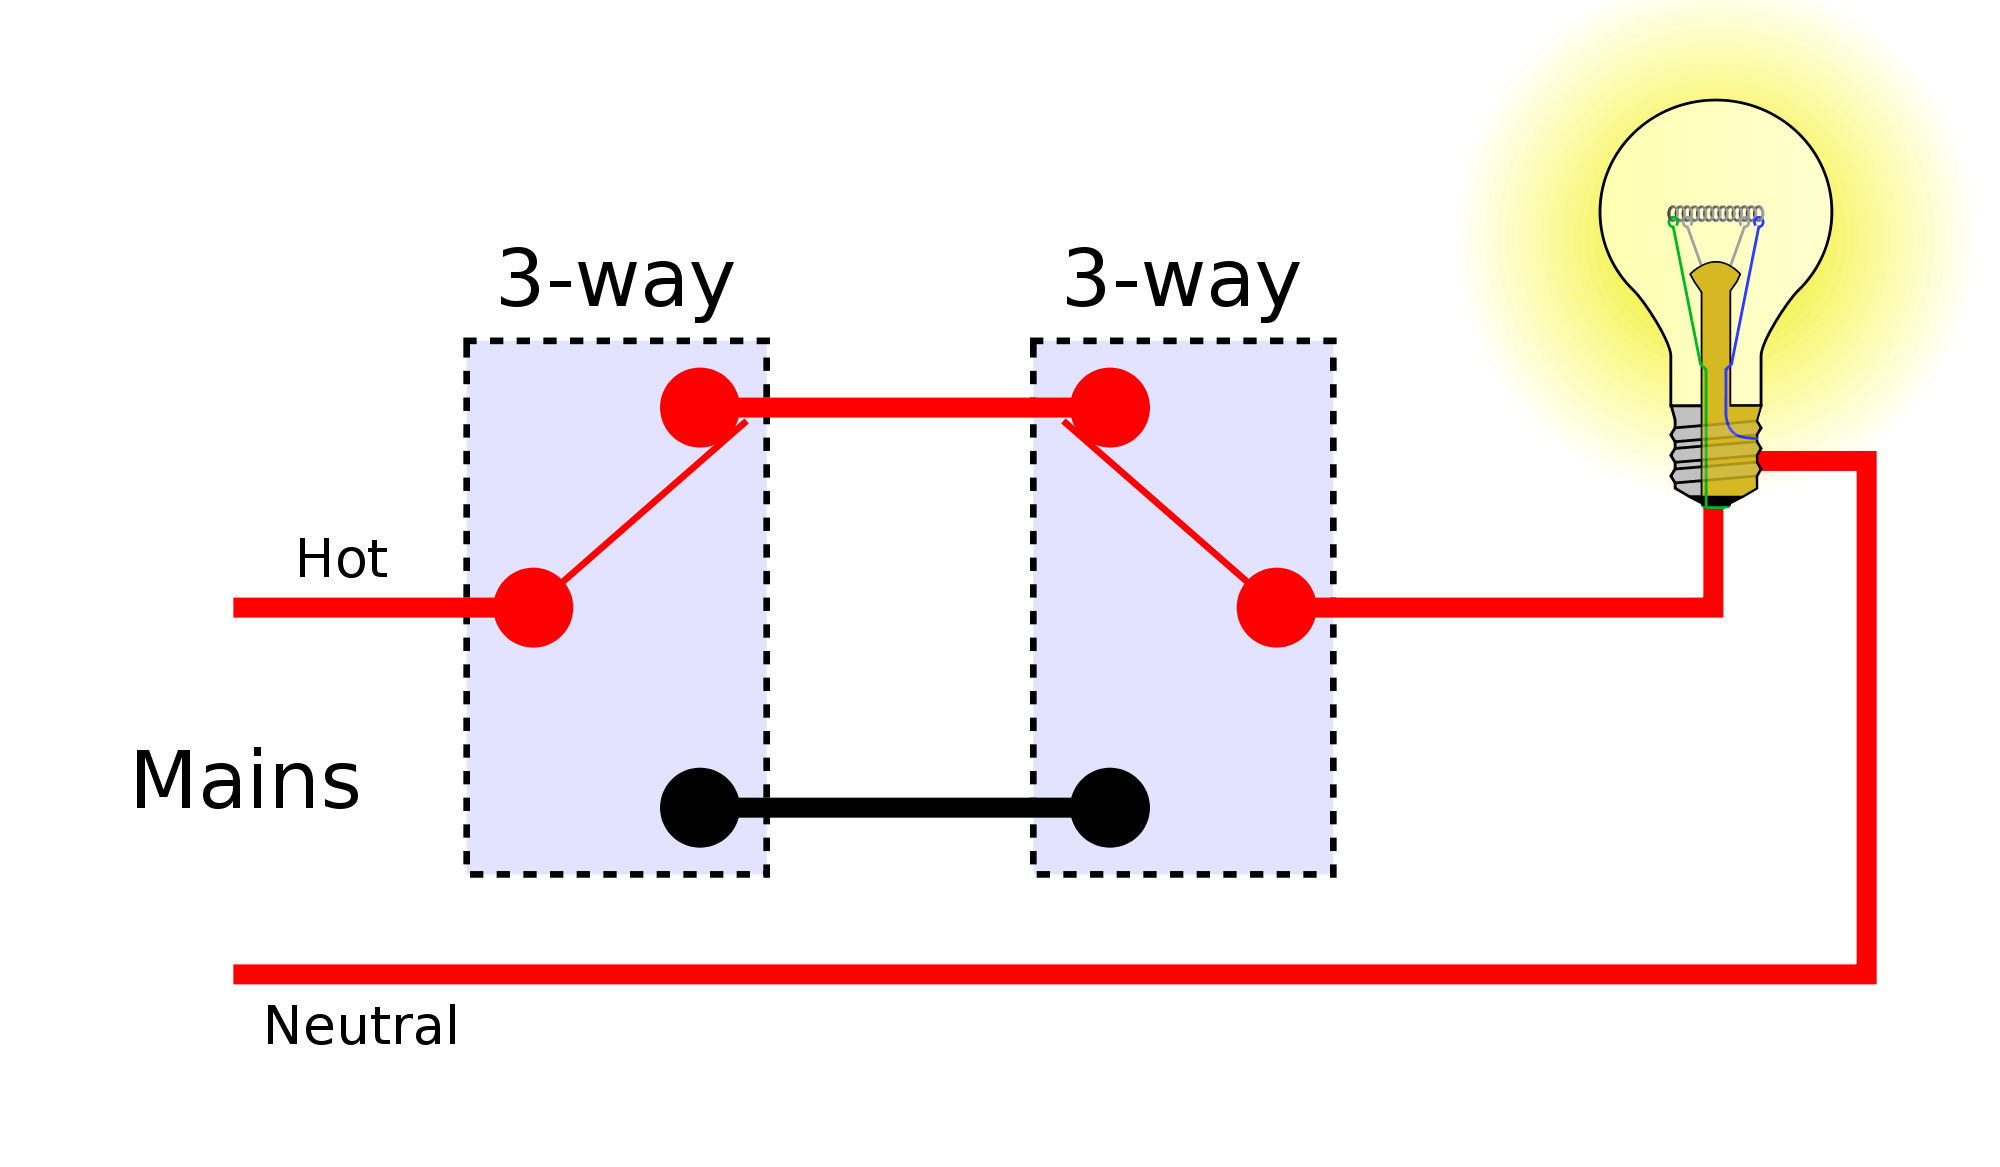 yjotp?w=700 3 way switches simple 3 way switch diagram at bayanpartner.co